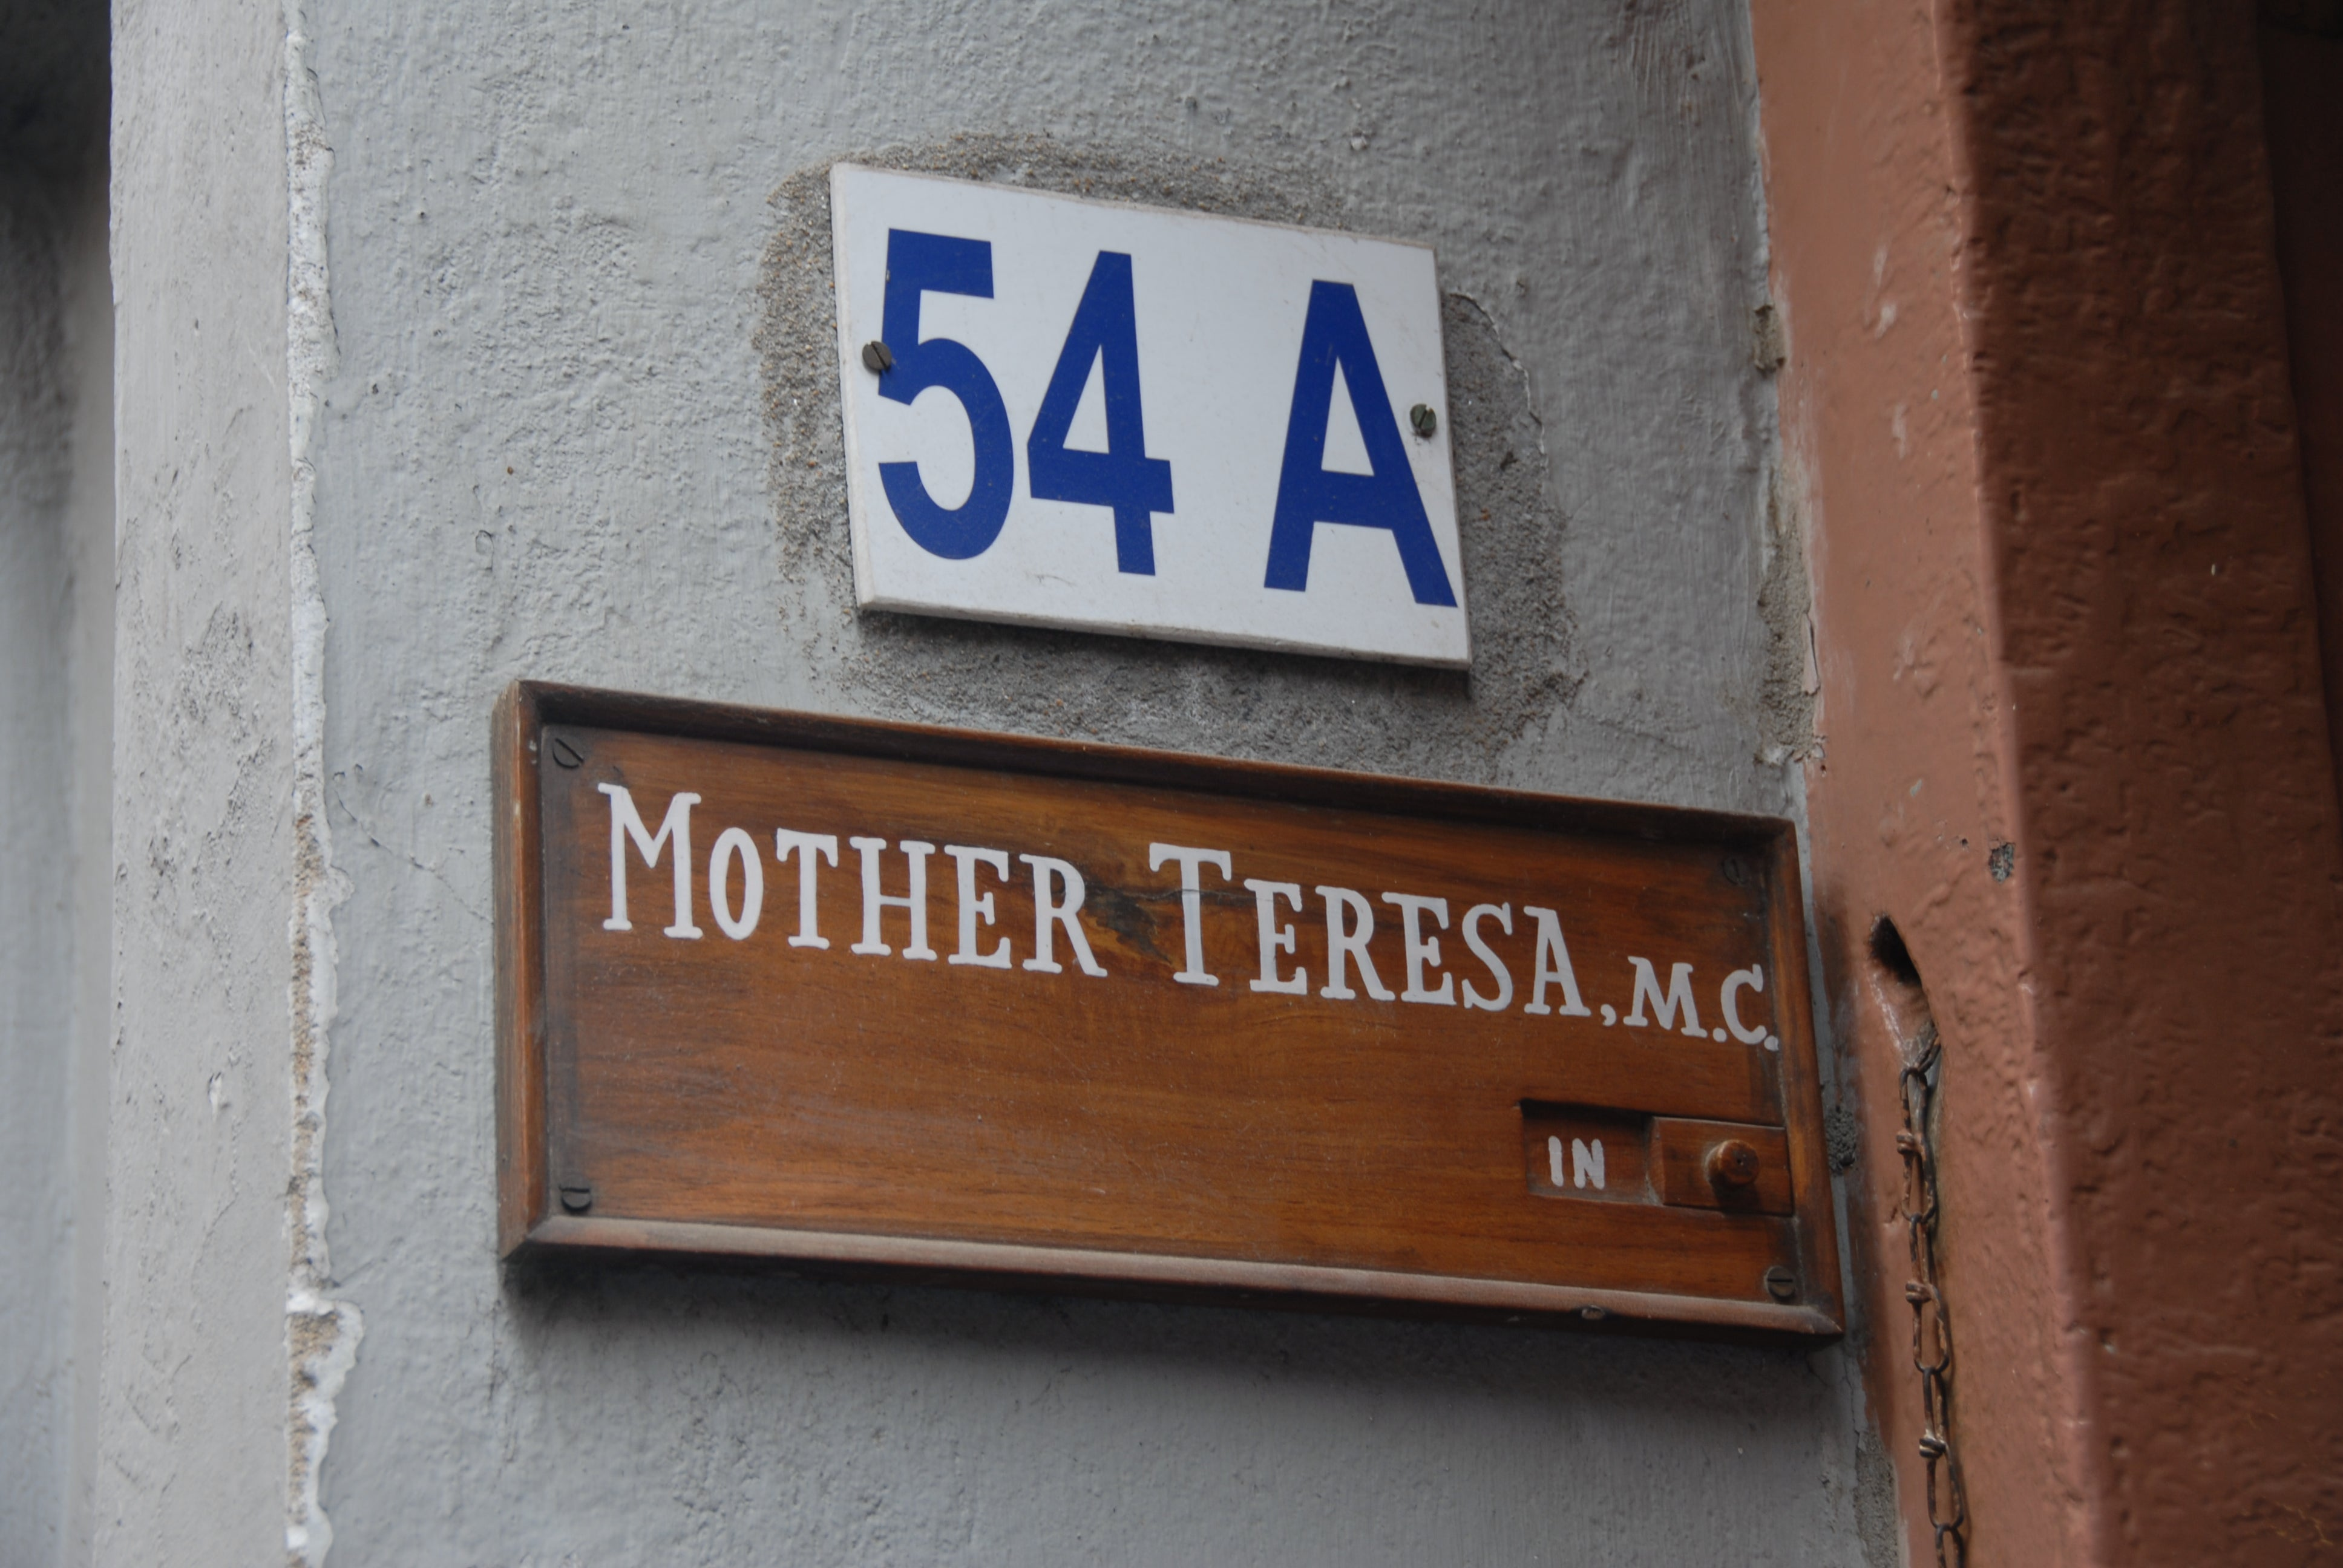 Cartel de la calle en Mother House de Madre Teresa